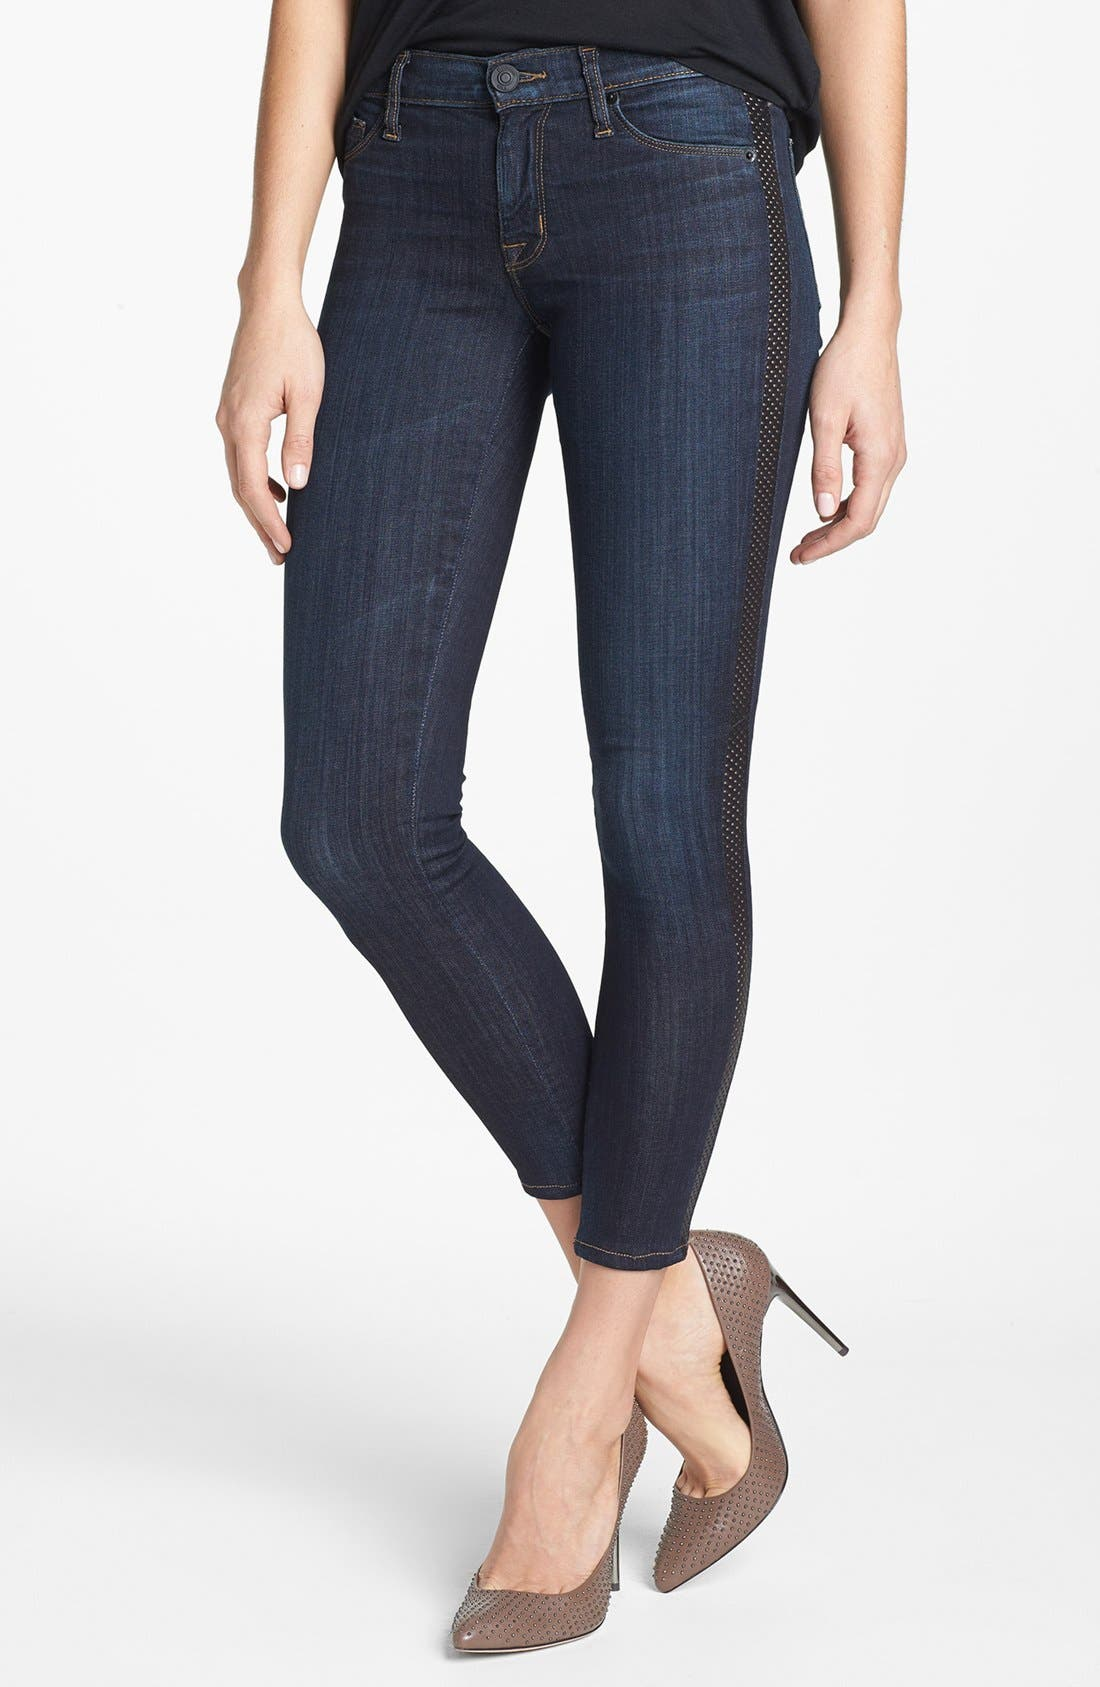 Alternate Image 1 Selected - Hudson Jeans 'Ava' Leather Tuxedo Stripe Crop Skinny Jeans (Shirley)